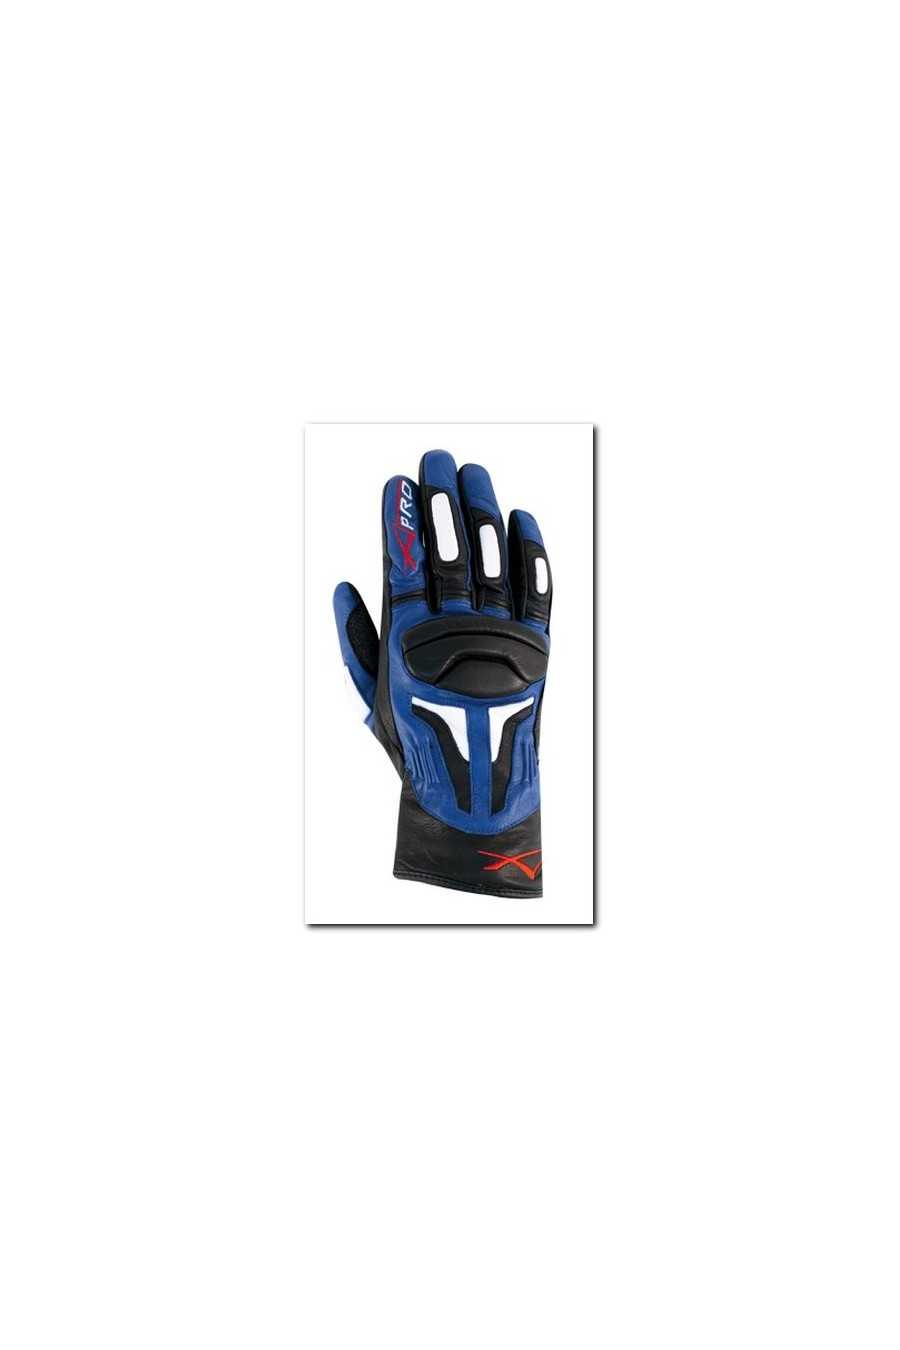 Guanto Moto A-Pro Fire Power Black Blue